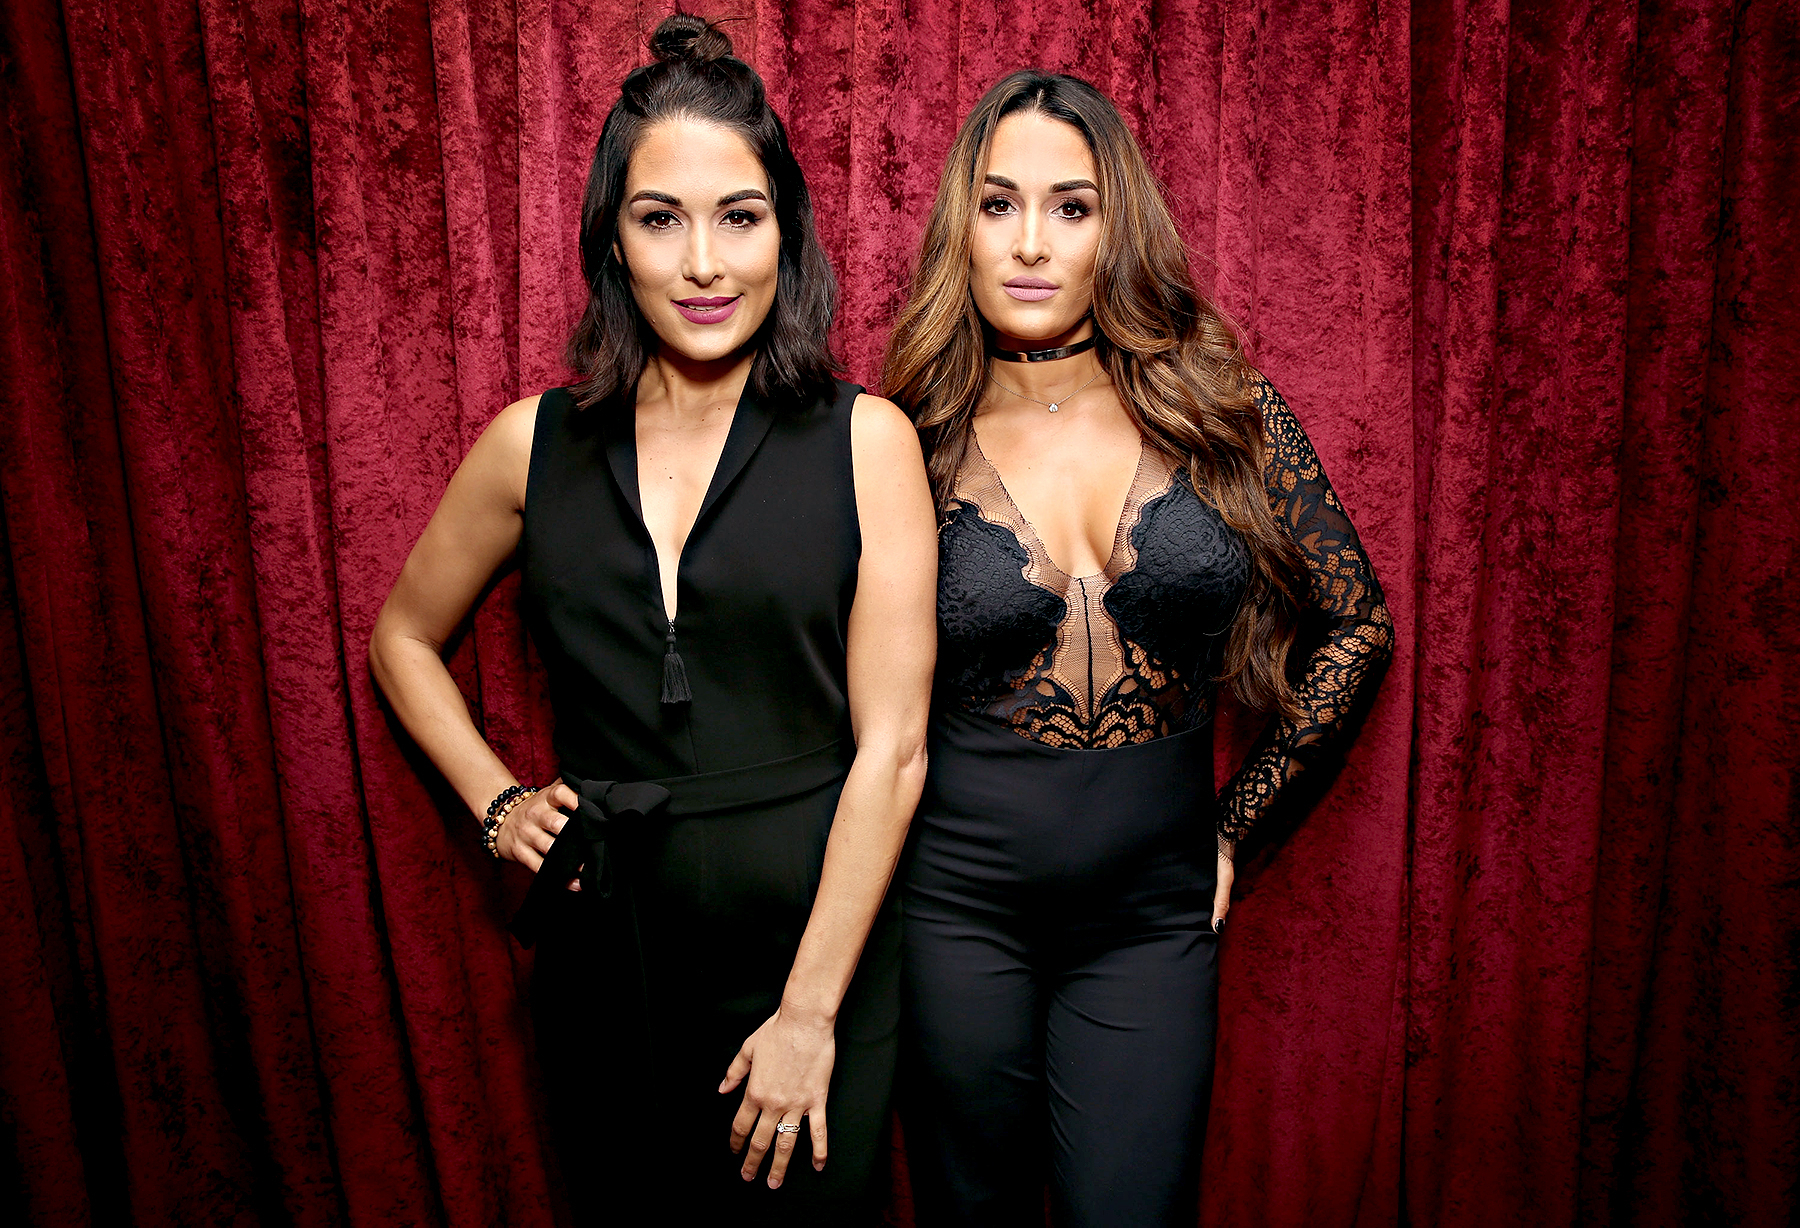 Brie Bella and Nikki Bella visits the SiriusXM Studios on September 29, 2016 in New York City.